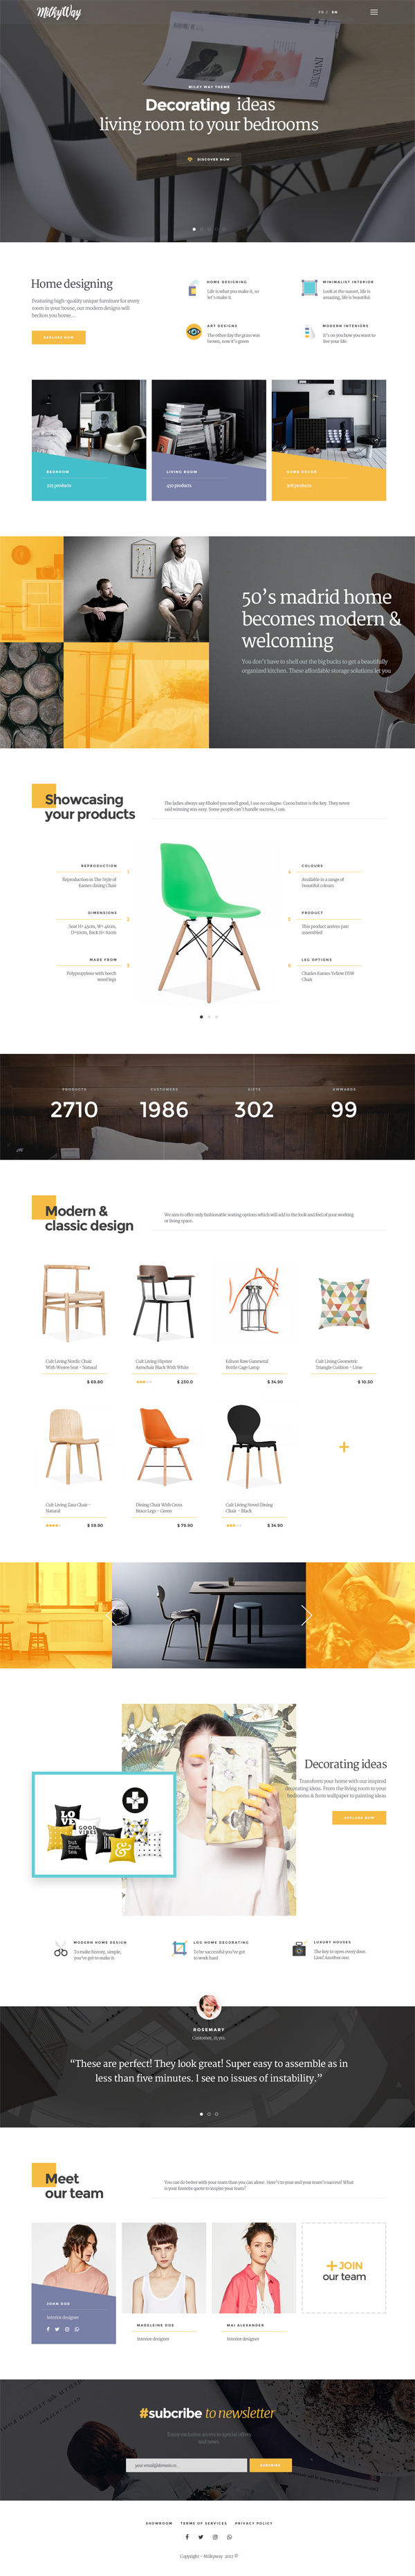 Milkyway - Creative and Ecommerce PSD Template